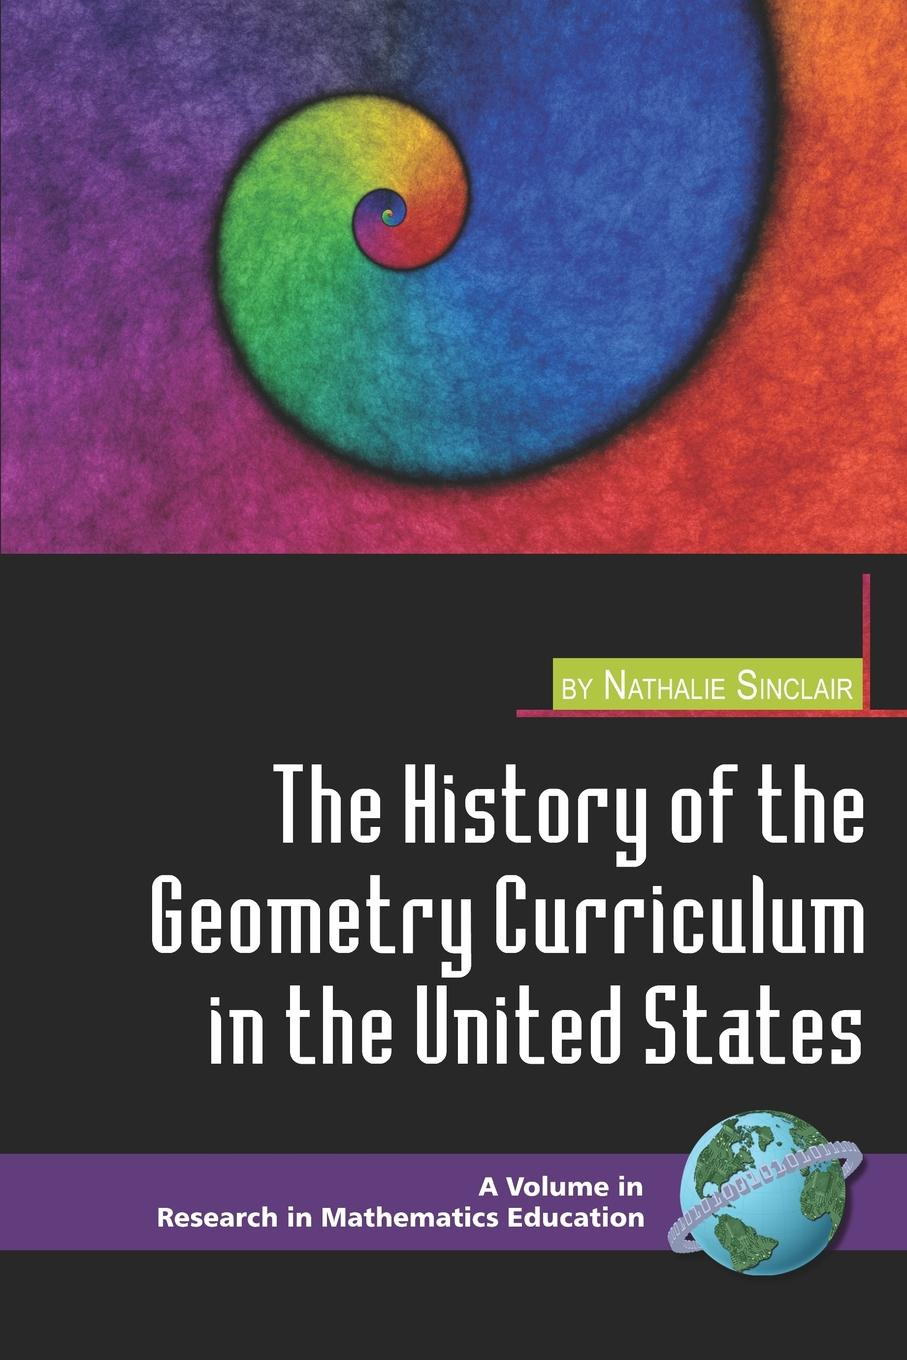 Nathalie Sinclair The History of the Geometry Curriculum in the United States (PB) asif nabiyev karim jafarli and matanat sultanova the mathematical proof and logical thinking in comprehensive schools